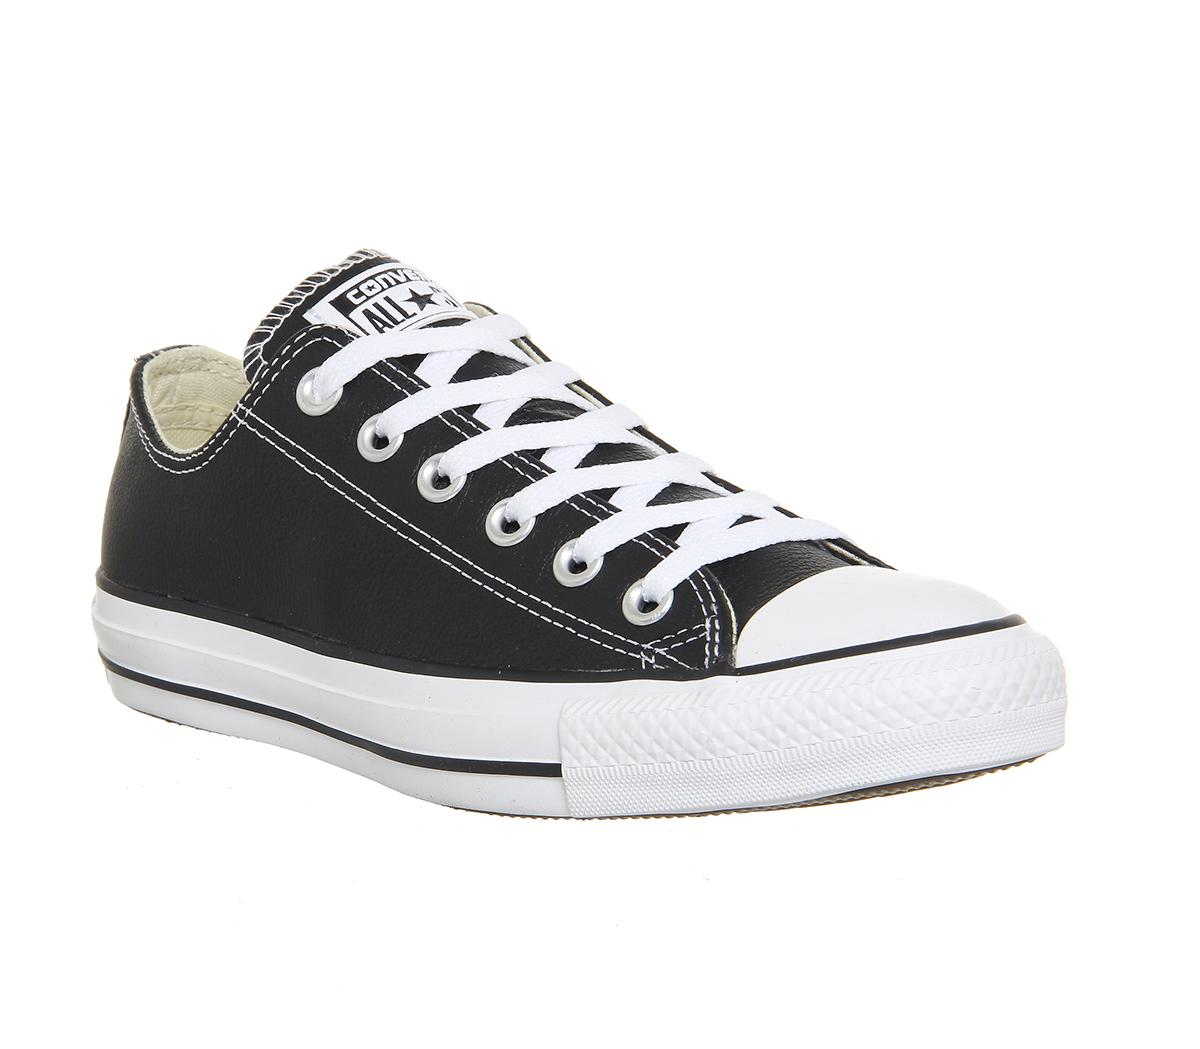 converse all star black and white